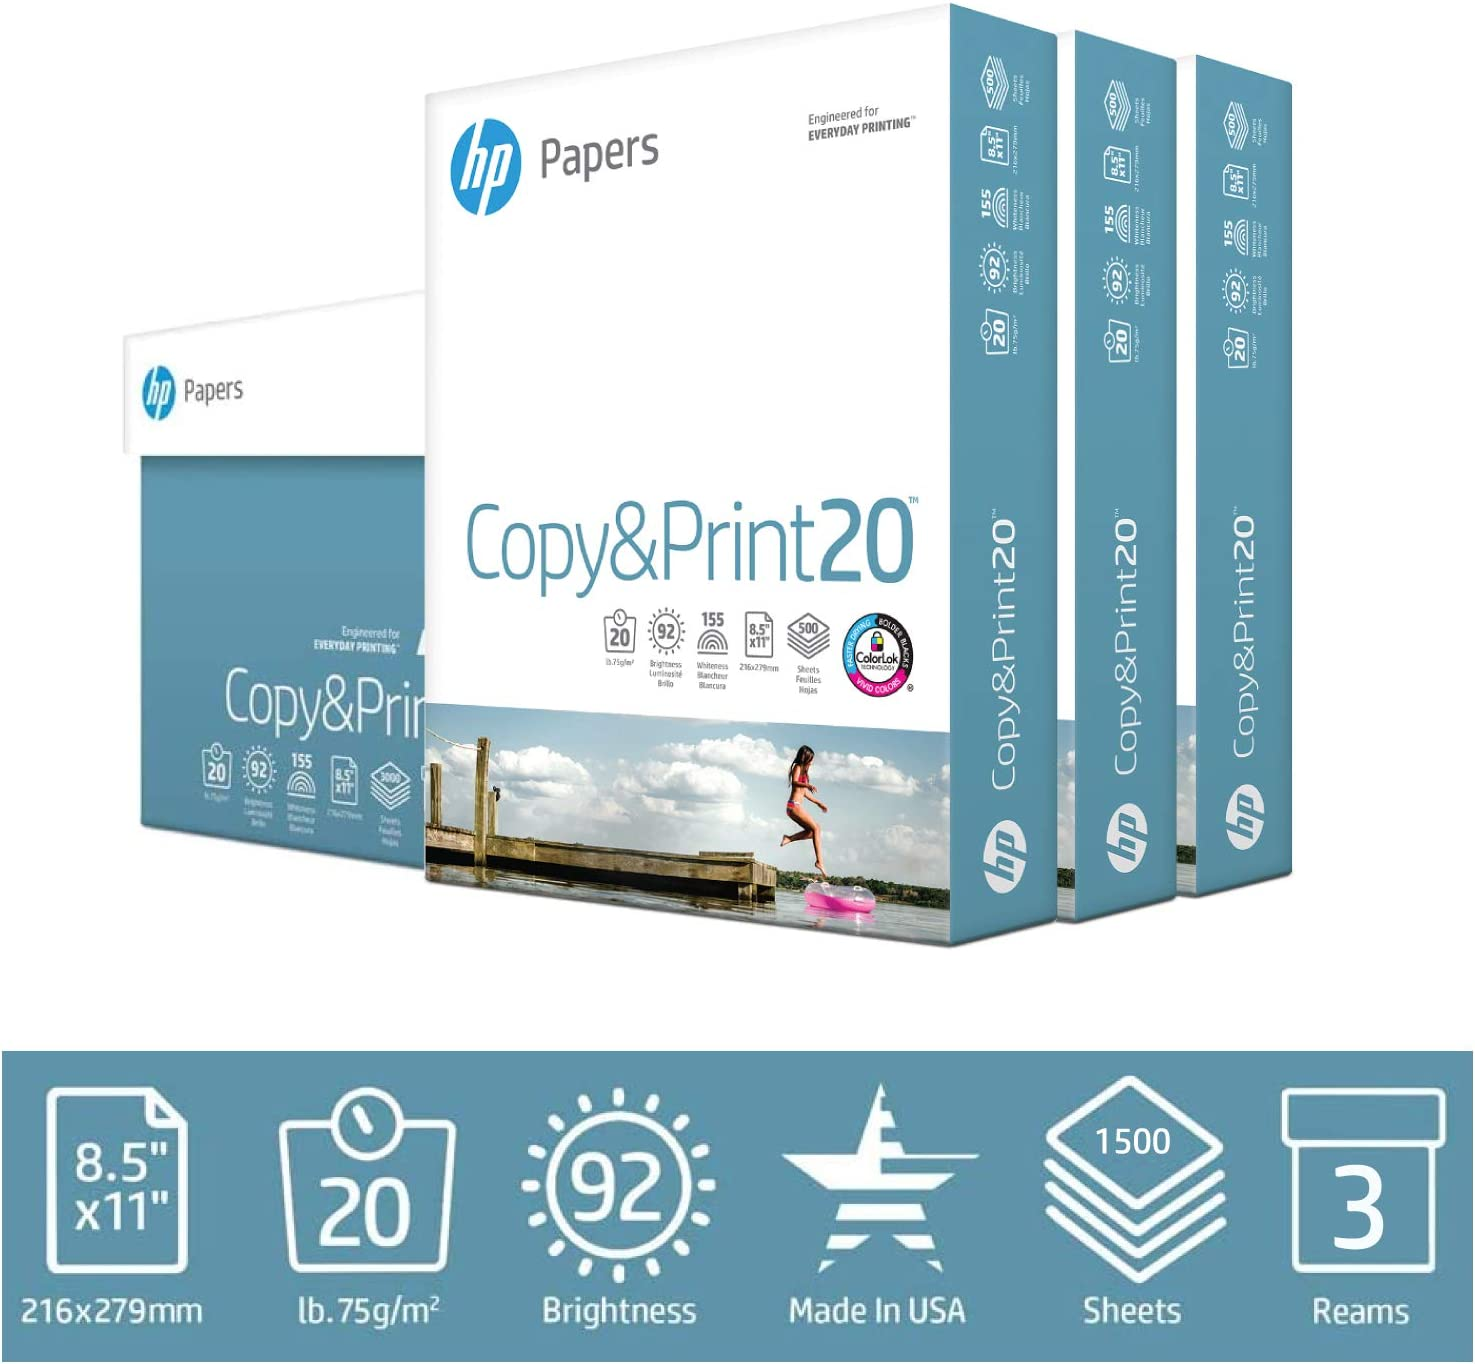 HP Printer Paper 8.5x11 Copy&Print 20 lb 3 Ream Case 1500 Sheets 92 Bright Made in USA FSC Certified Copy Paper HP Compatible 200090C